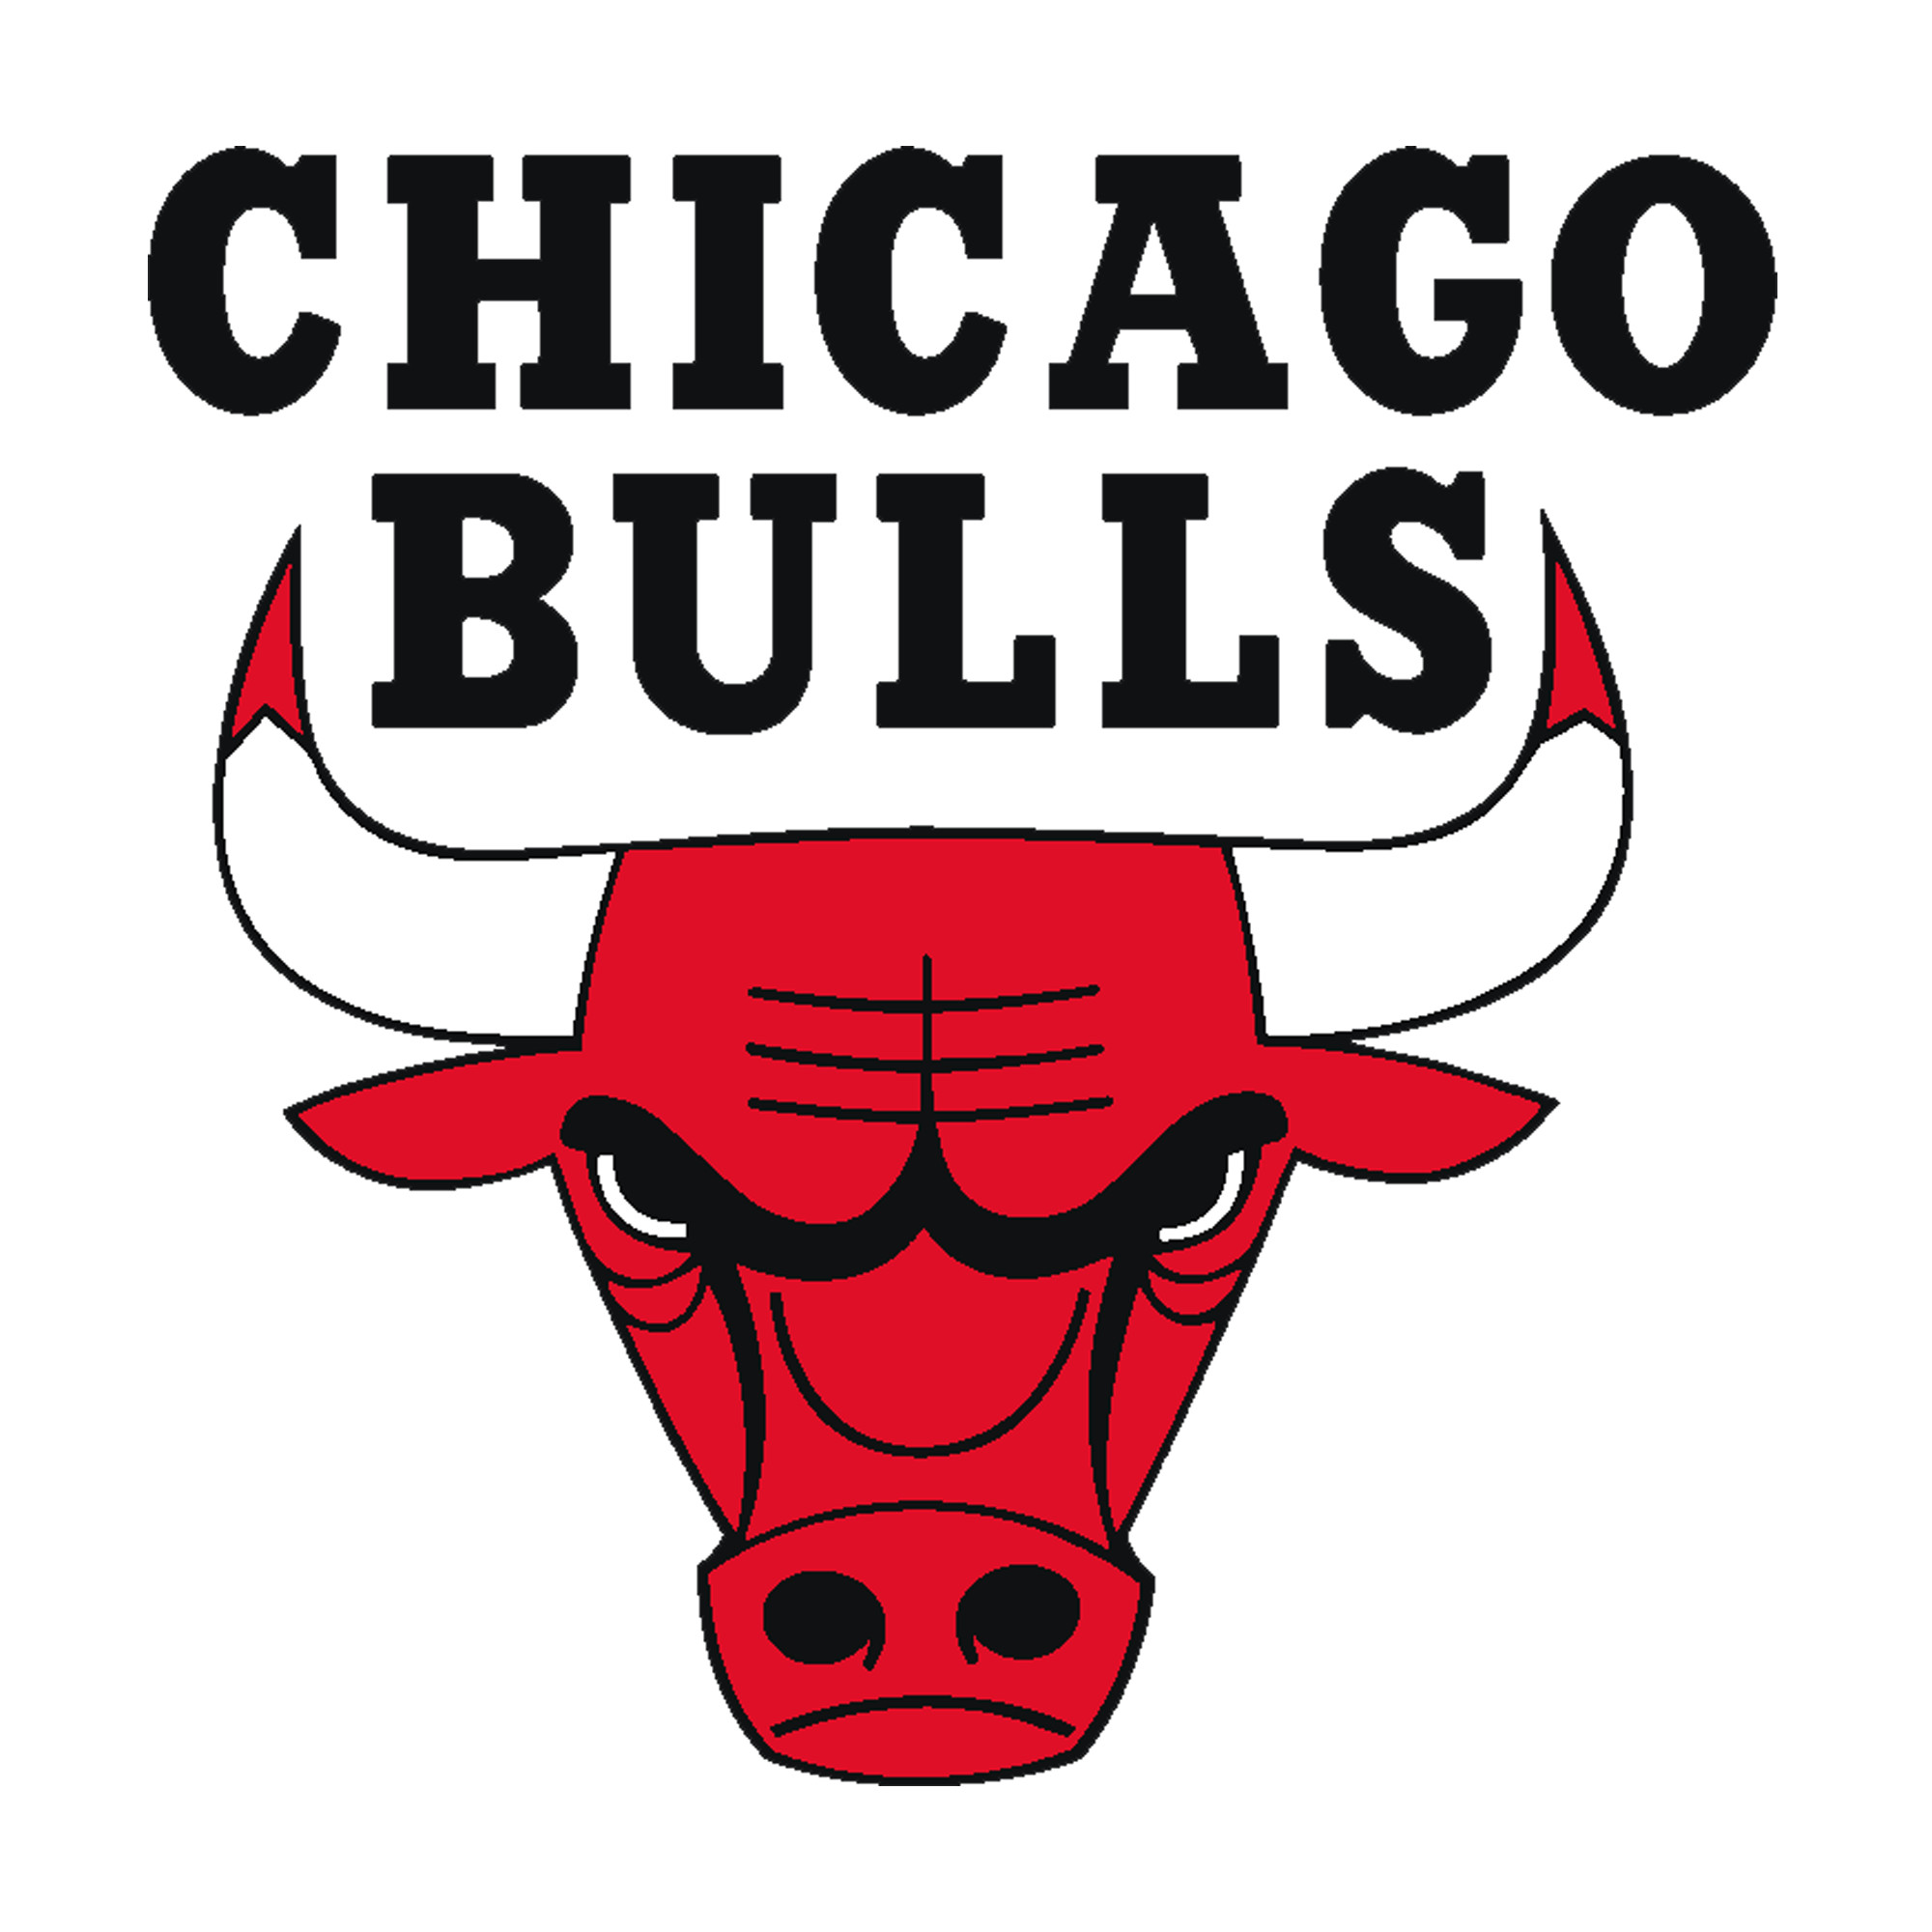 2000x2000 Chicago bulls logo wallpapers